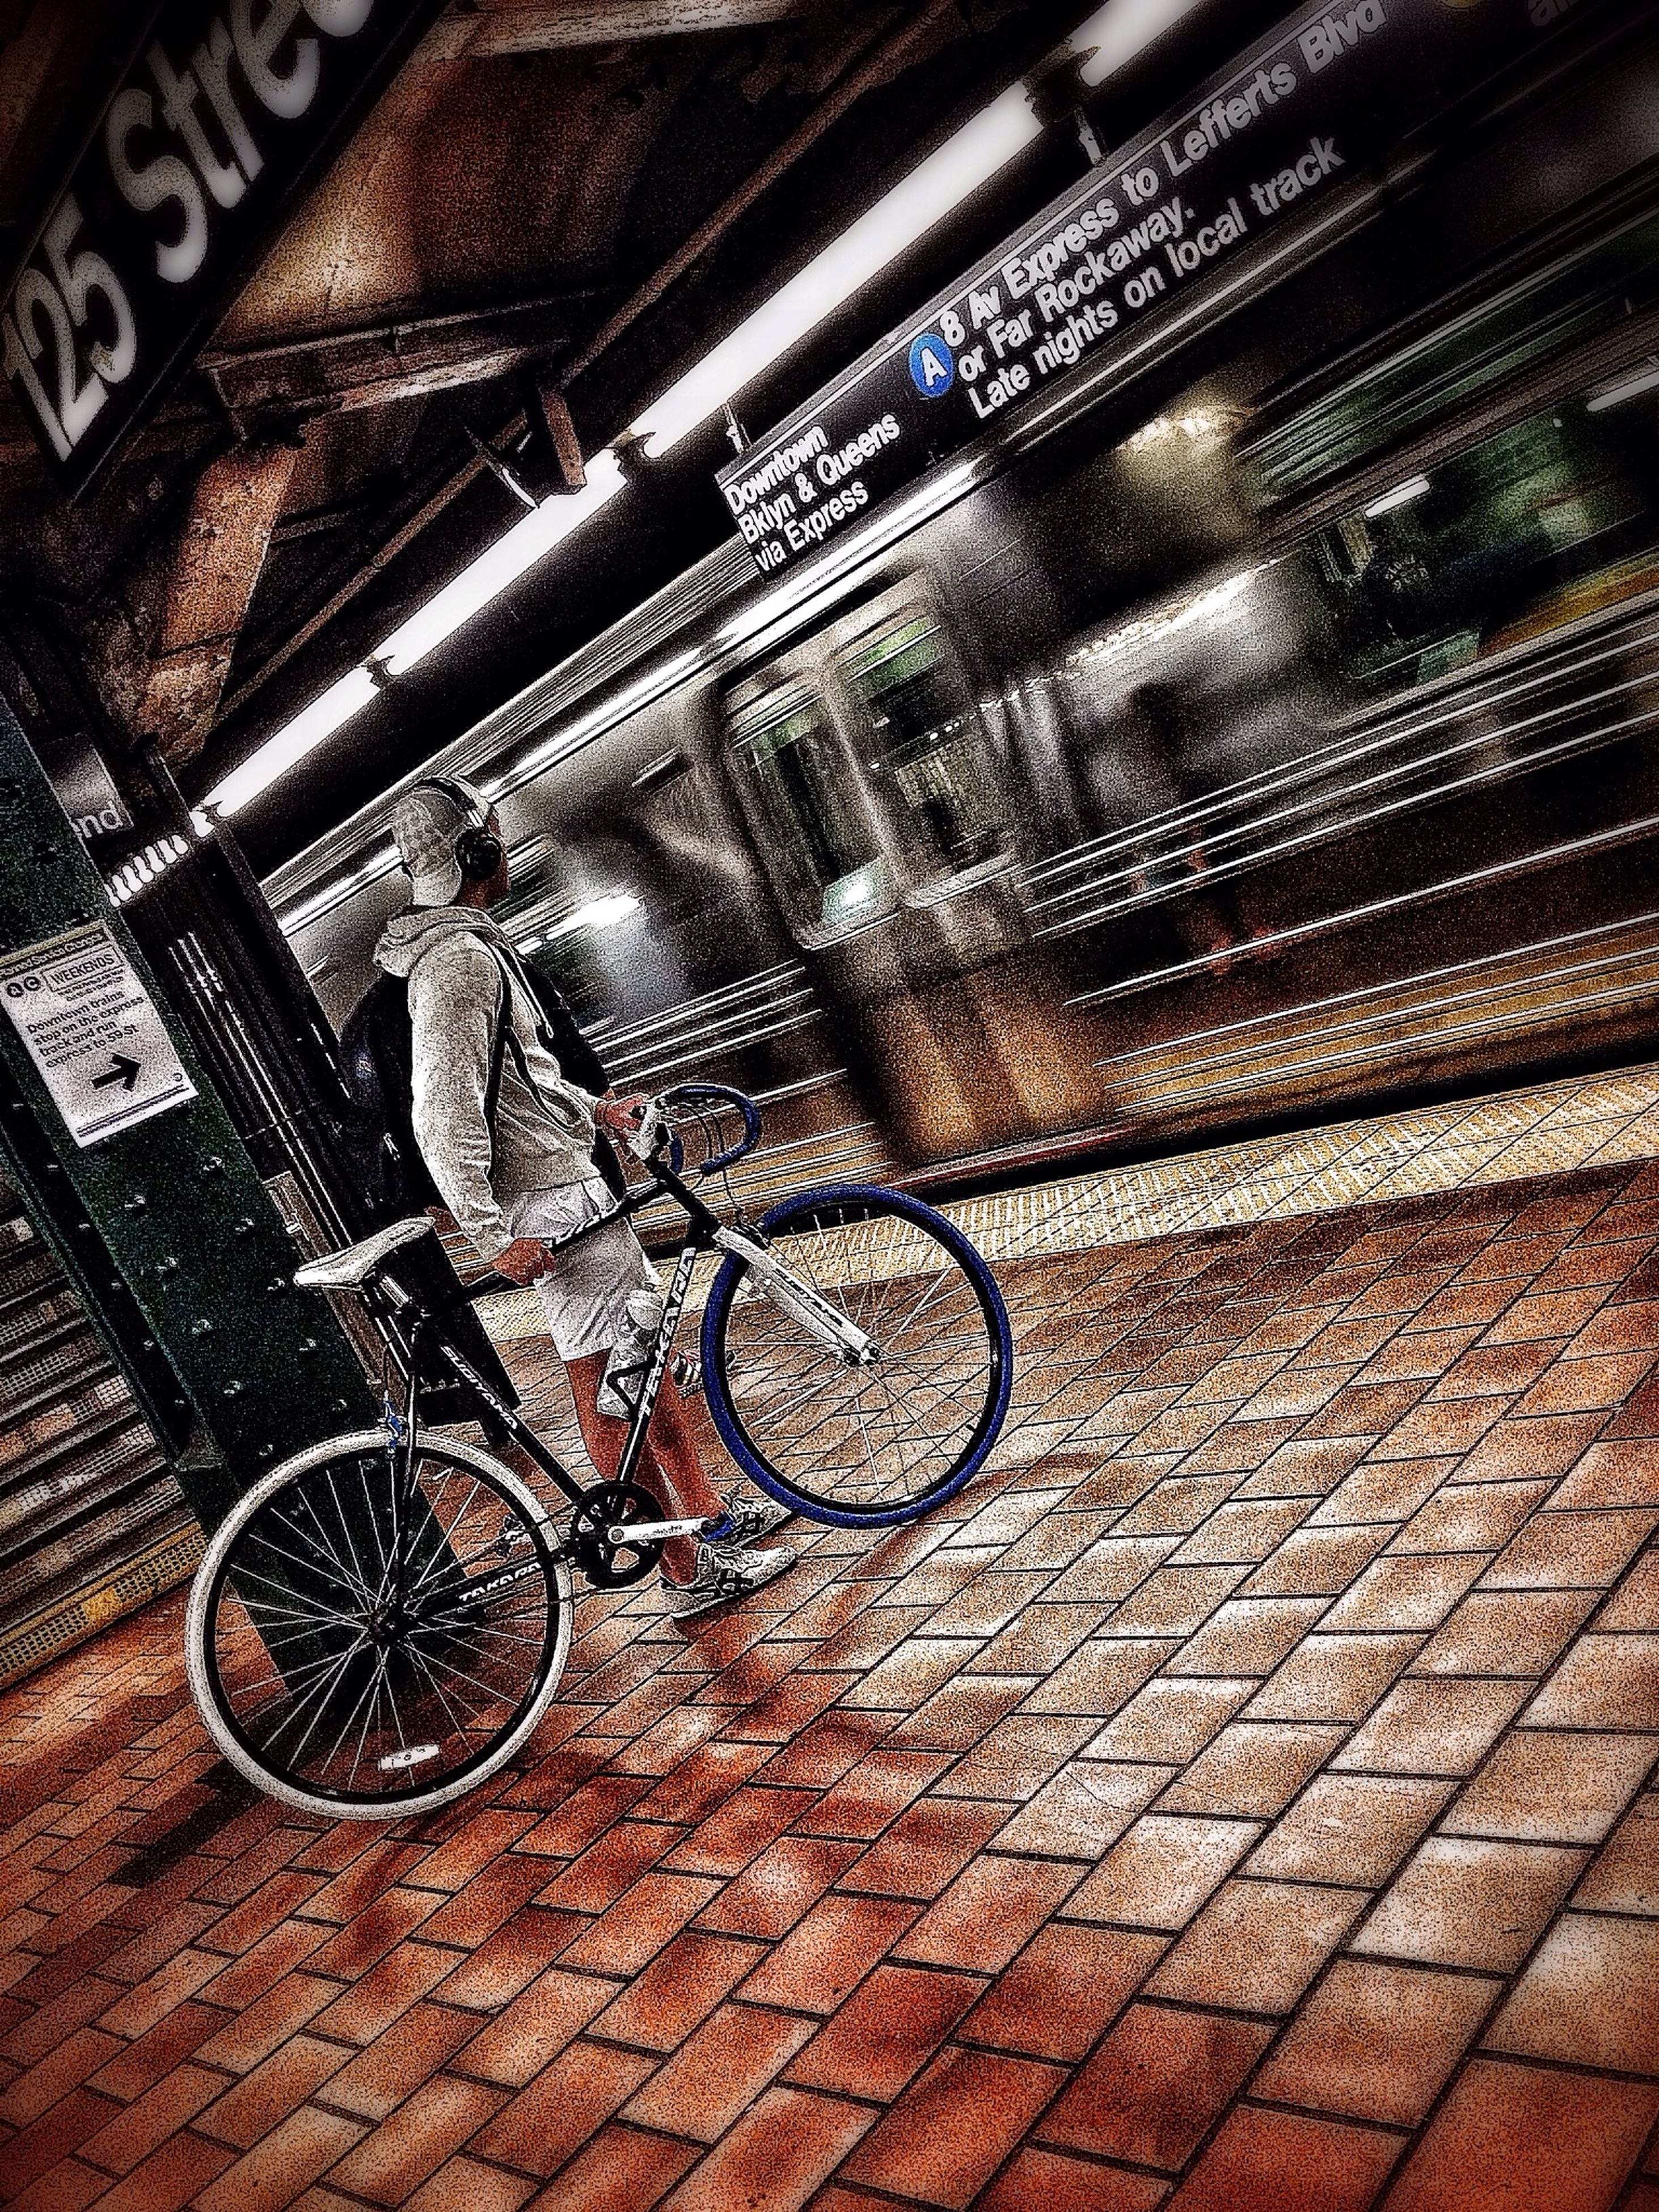 transportation, mode of transport, land vehicle, bicycle, stationary, parking, parked, street, travel, indoors, car, no people, high angle view, illuminated, night, wheel, sidewalk, architecture, old-fashioned